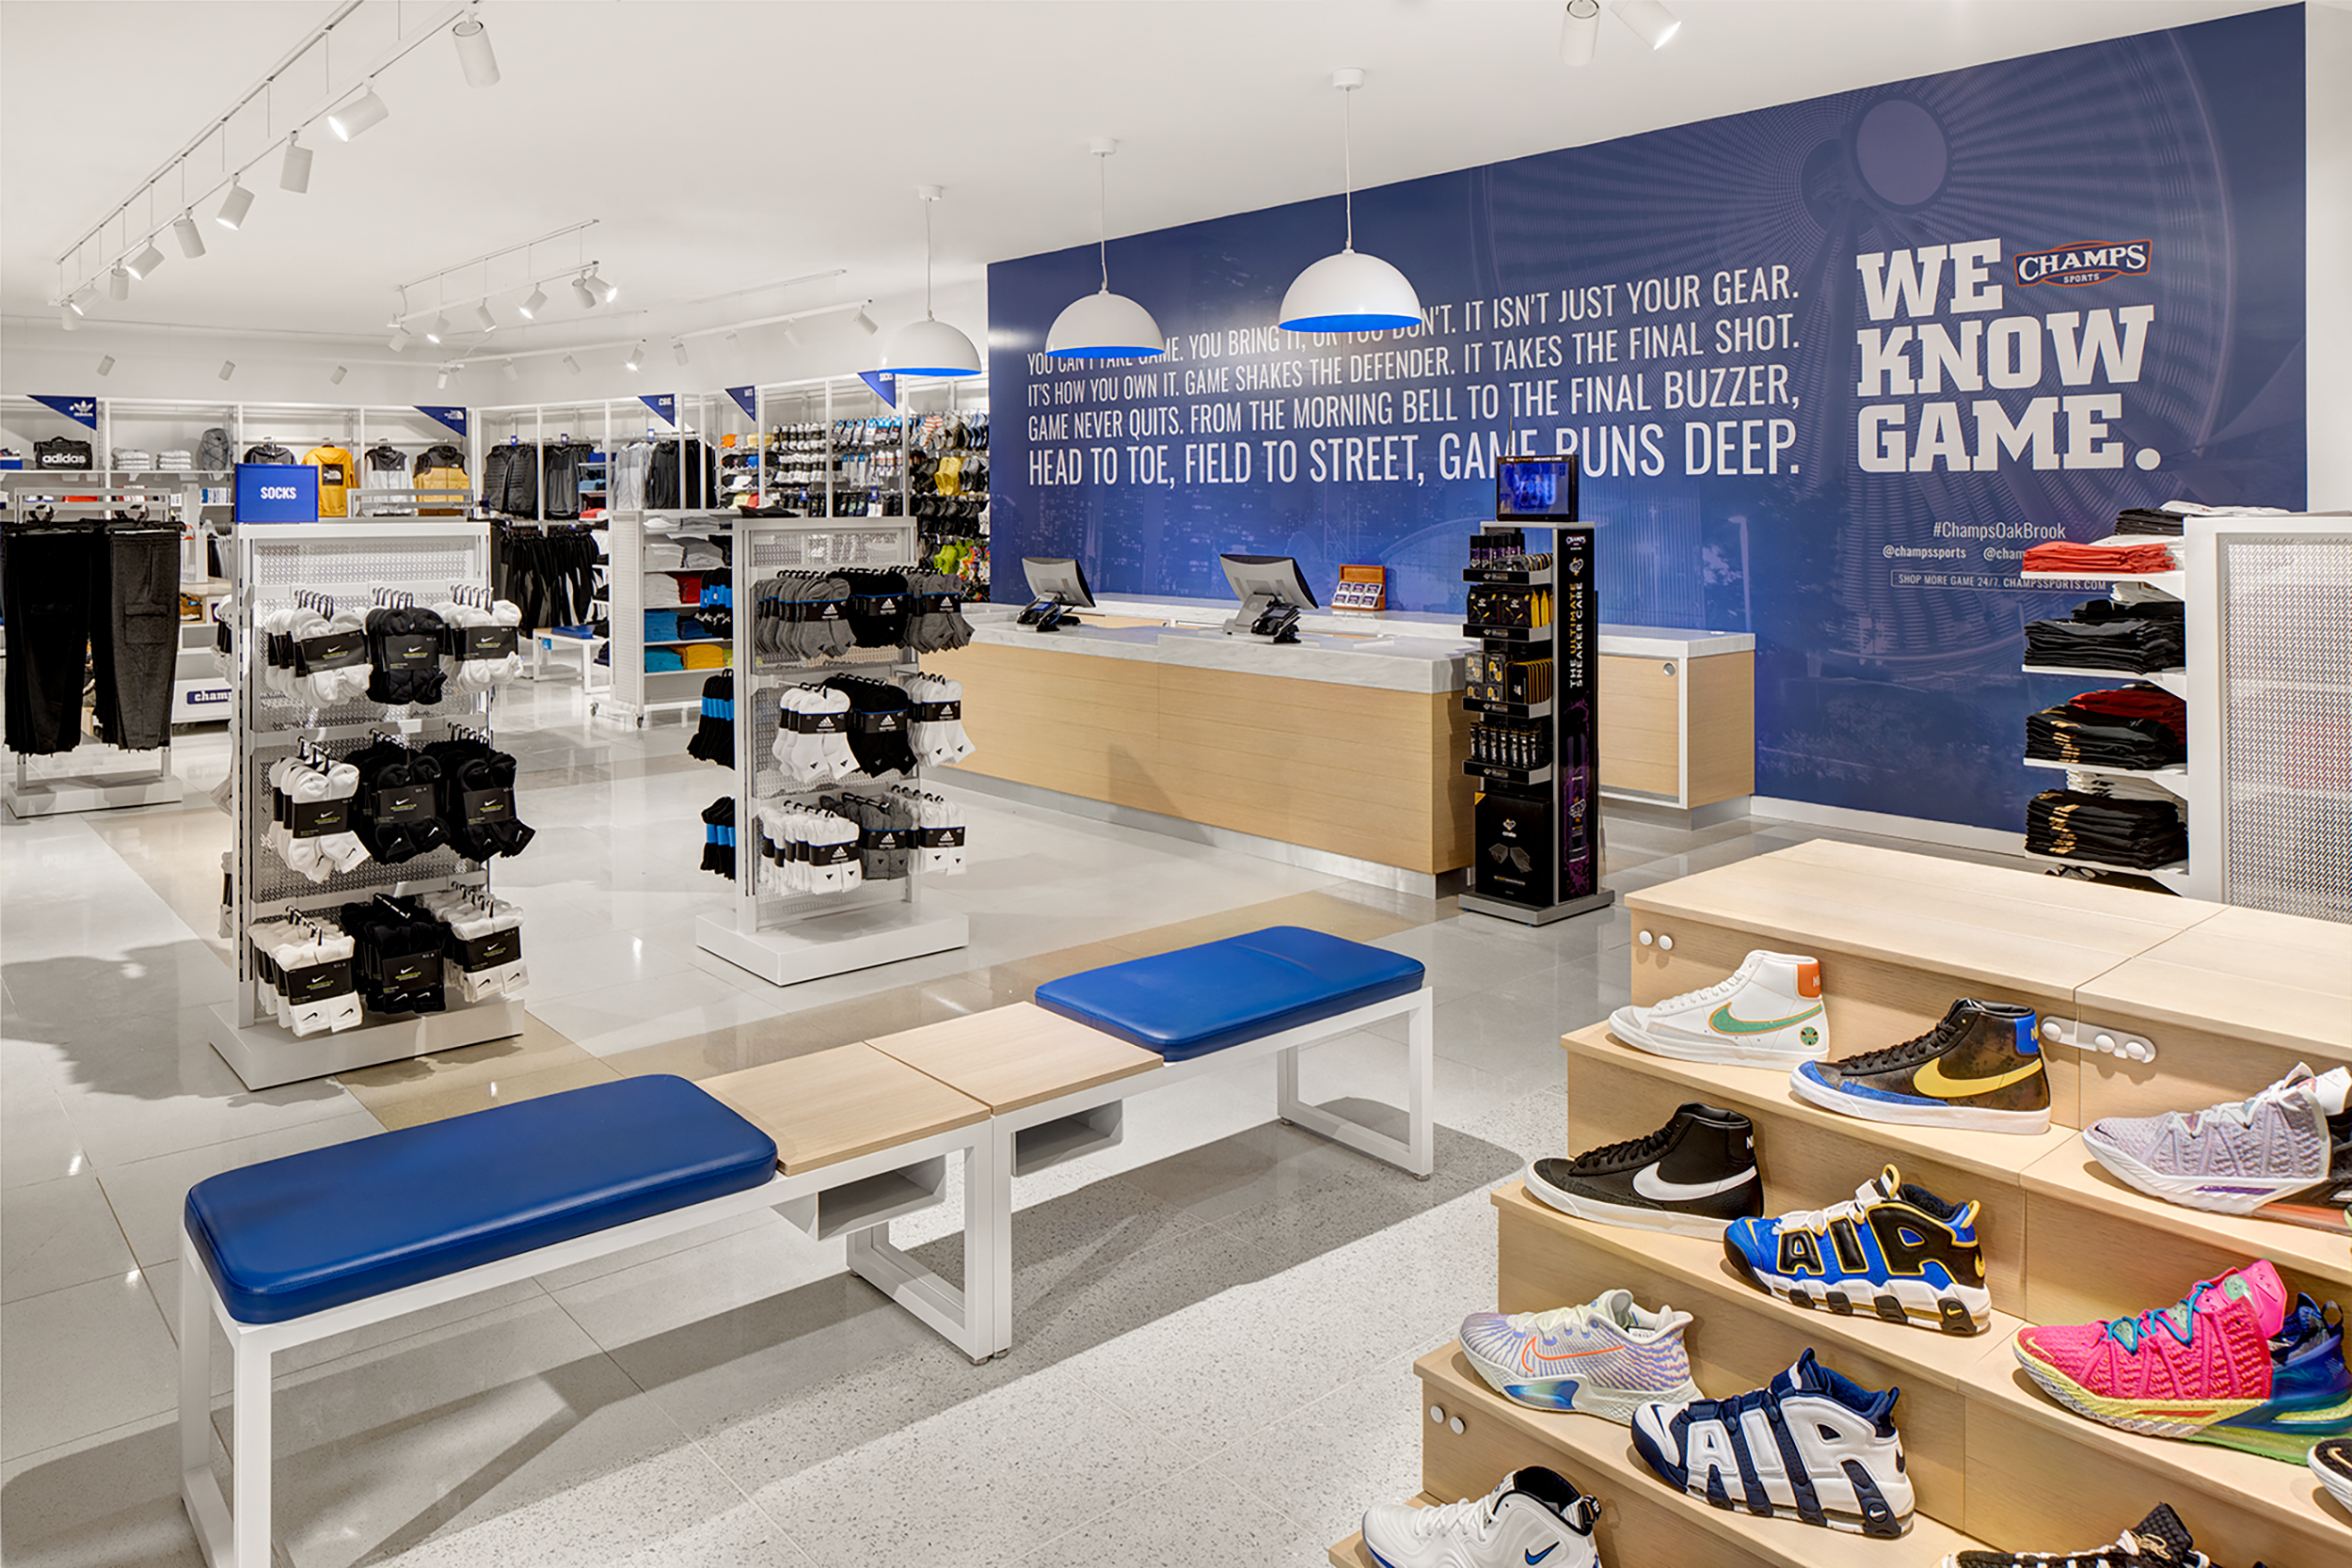 Situated on the first floor, the Champs area is demarcated by its signature white and blue brand colors.